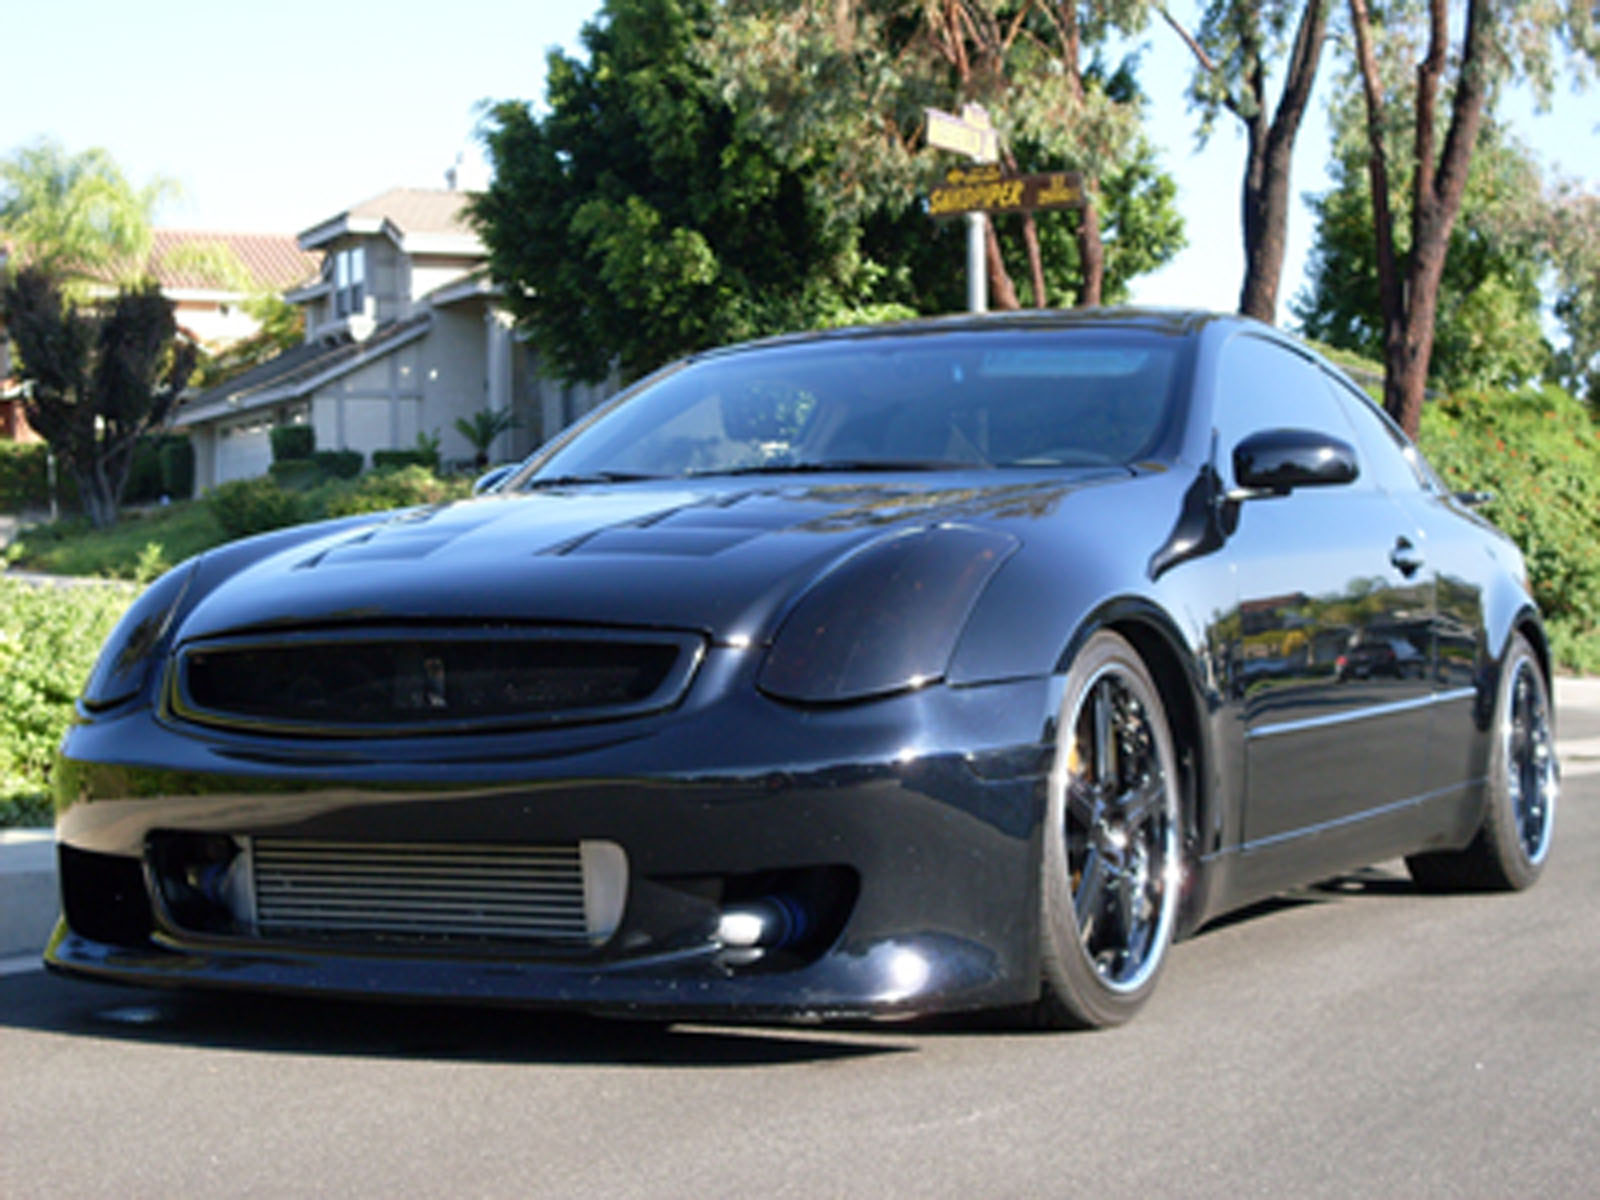 2003 infiniti g35 for sale city of industry california. Black Bedroom Furniture Sets. Home Design Ideas